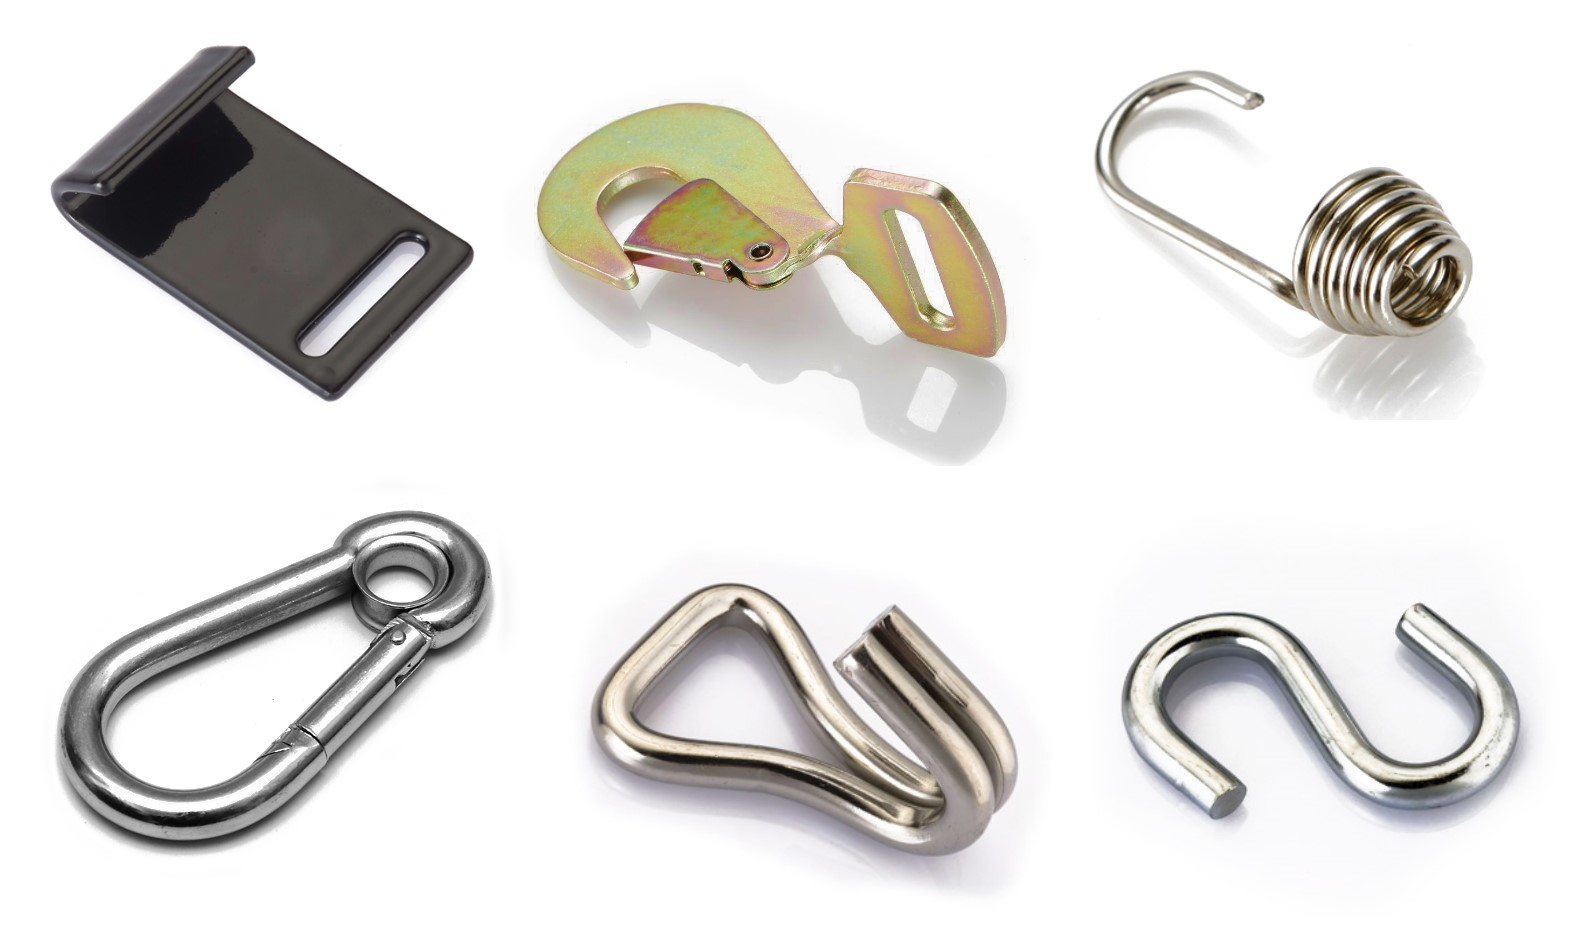 Automobile Hook for Auto Exterior Accessories made by Win Chance Metal Co., LTD. 鈞成金屬股份有限公司 - MatchSupplier.com